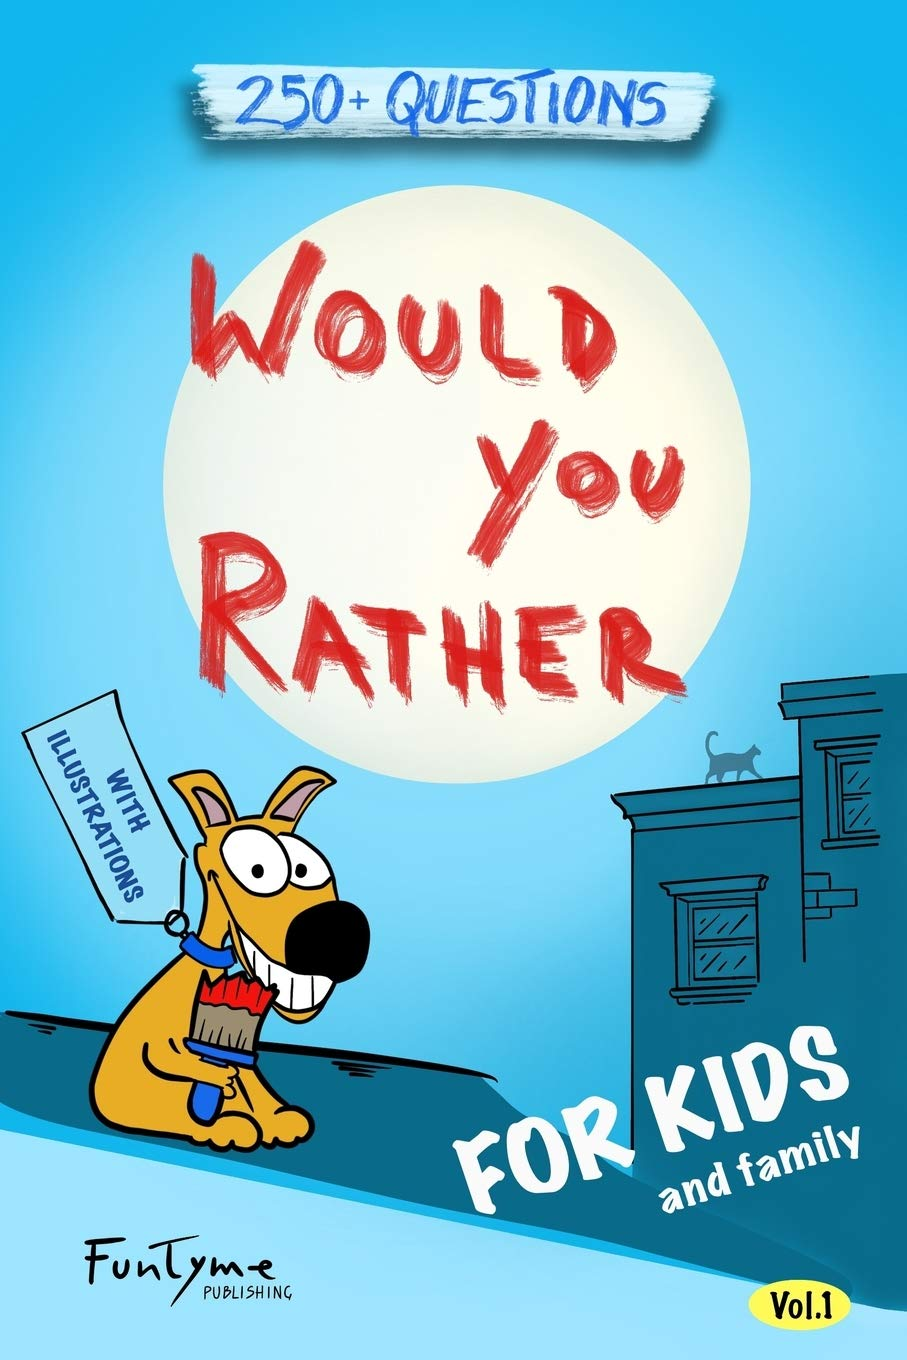 Image OfWould You Rather?: Game Book For Kids And Family - 250+ Original And Bizarre WYR Questions With Illustrations (Lovely Gift...